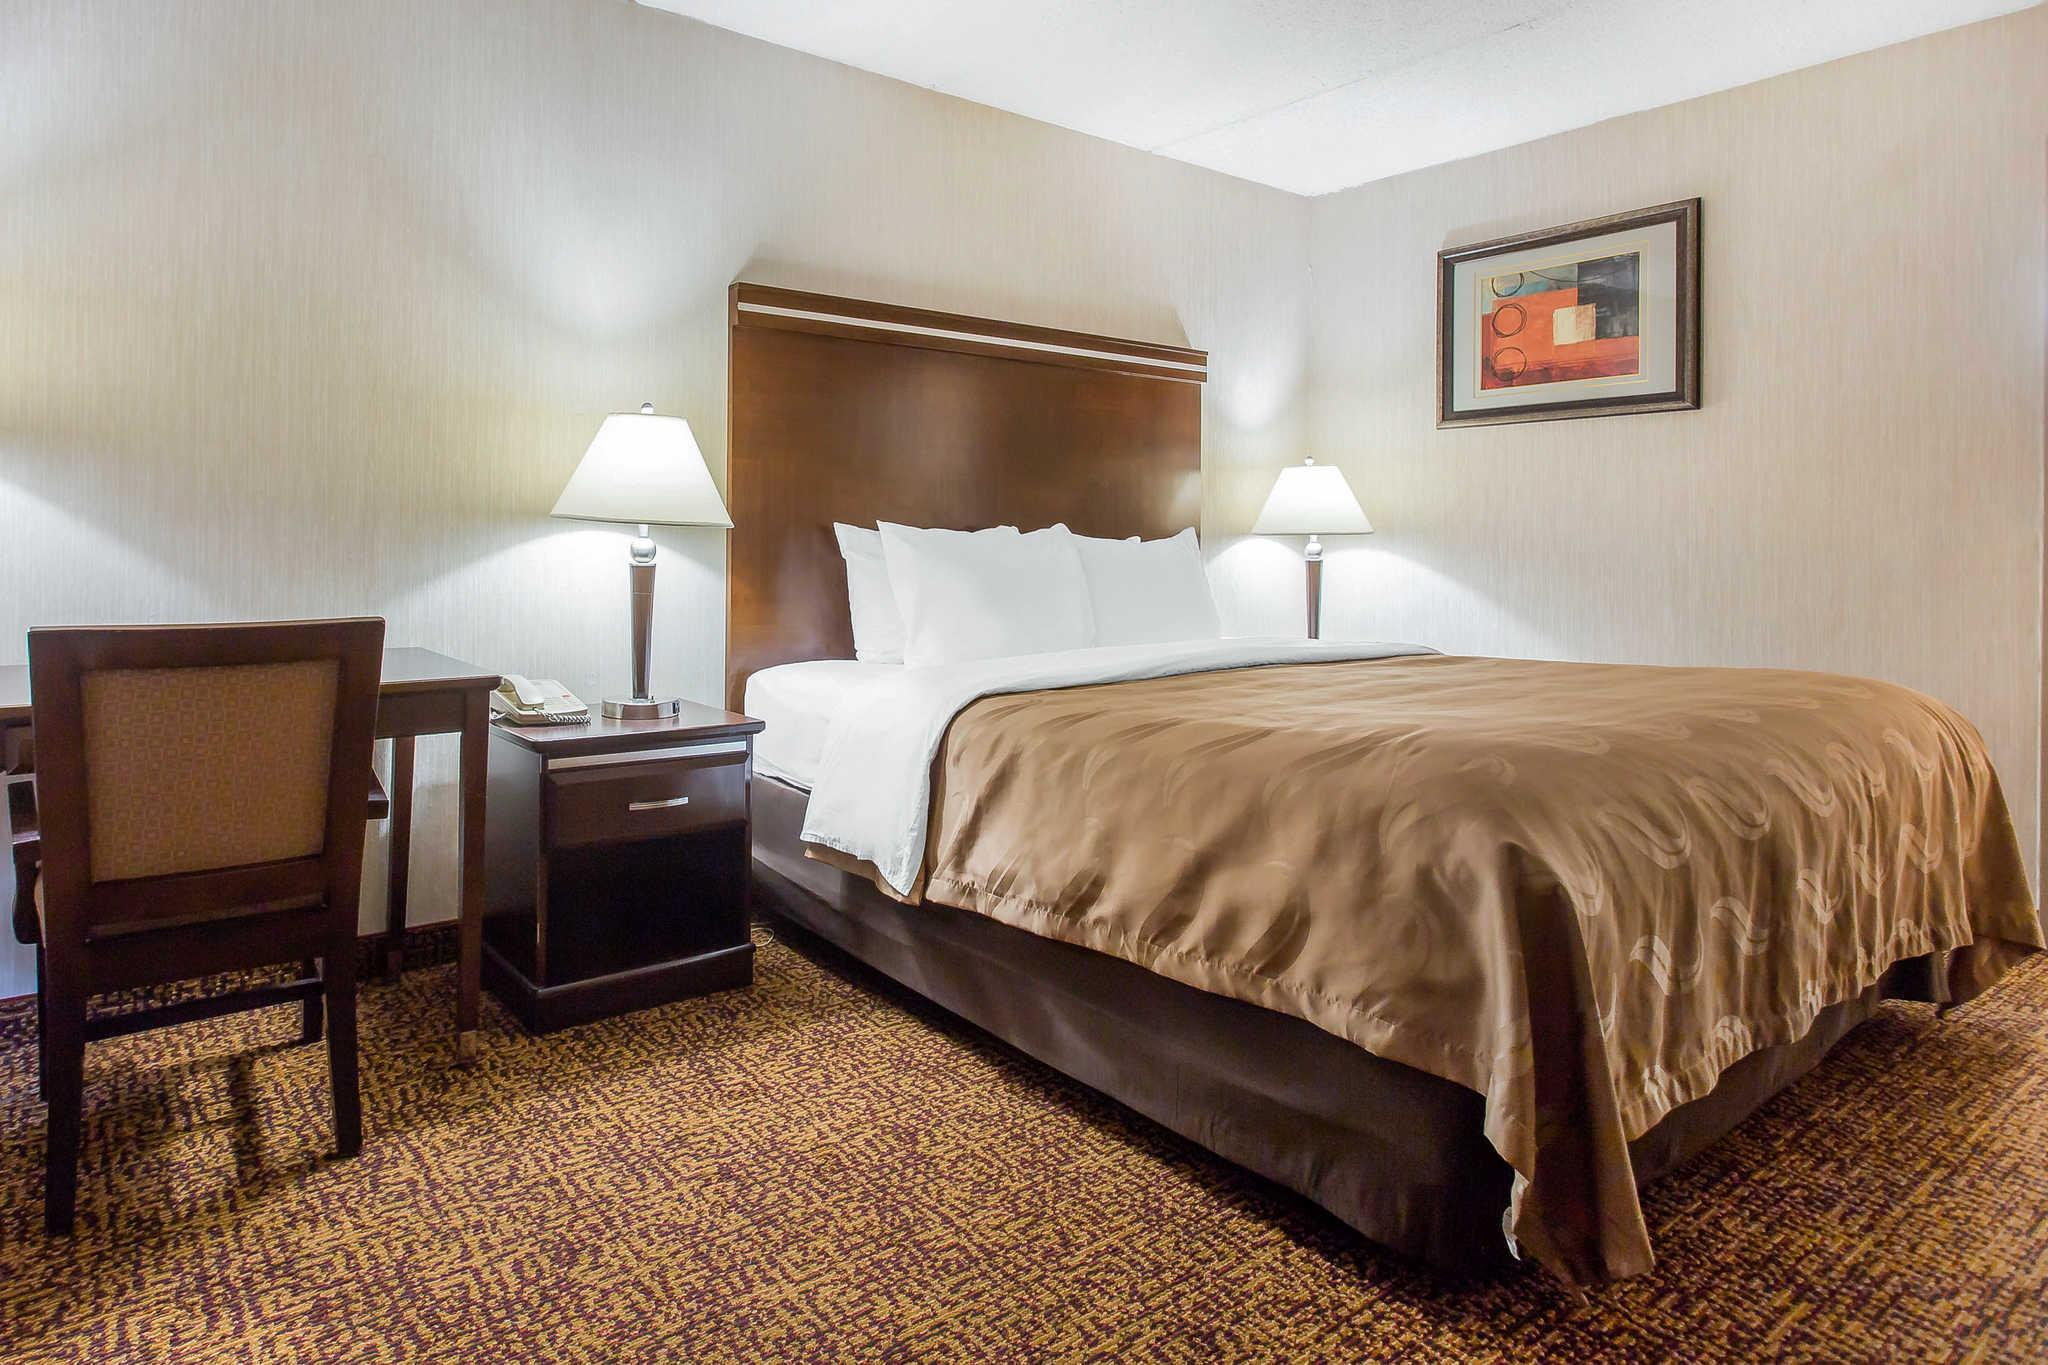 Quality Inn Mount Airy Mayberry, Surry